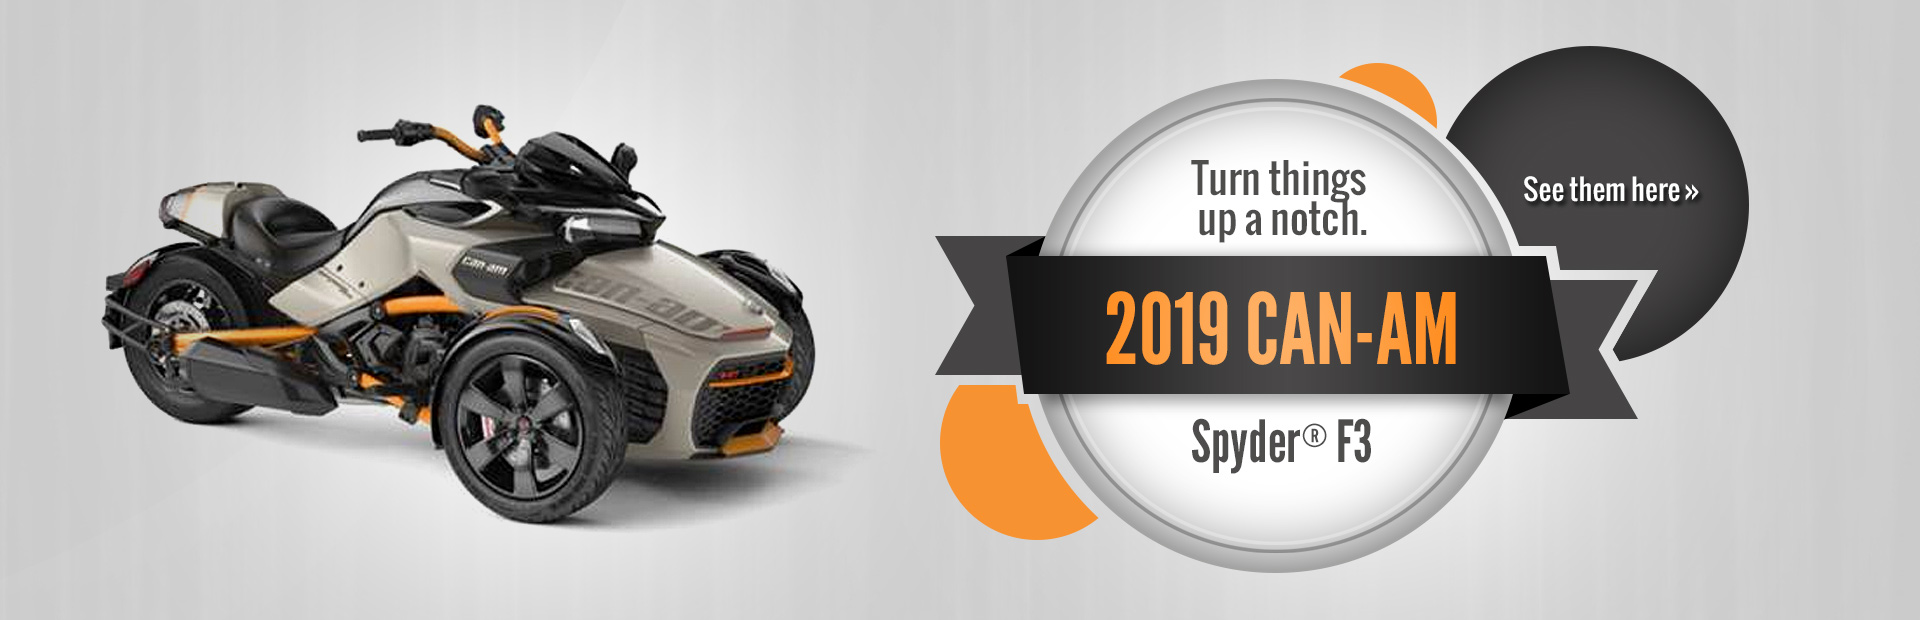 2019 Can-Am Spyder® F3: Click here to view the models.